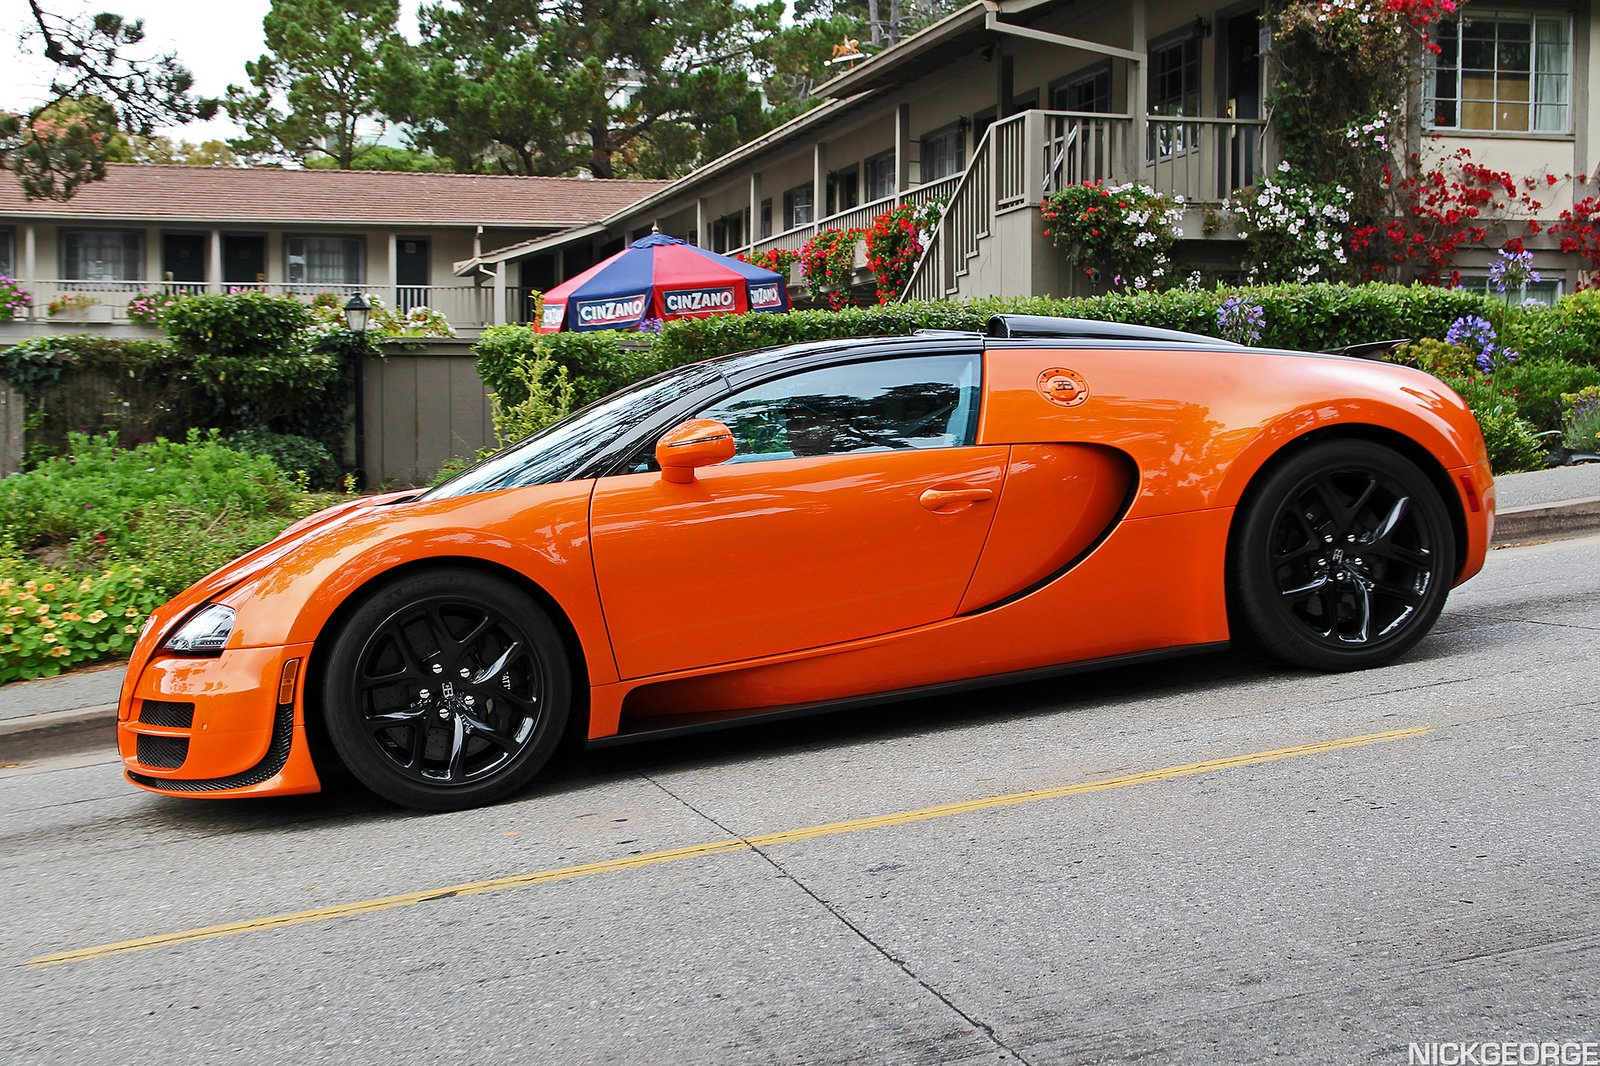 bugatti exotic supercars veyron orange wallpaper 1600x1066 432401 wallpaperup. Black Bedroom Furniture Sets. Home Design Ideas